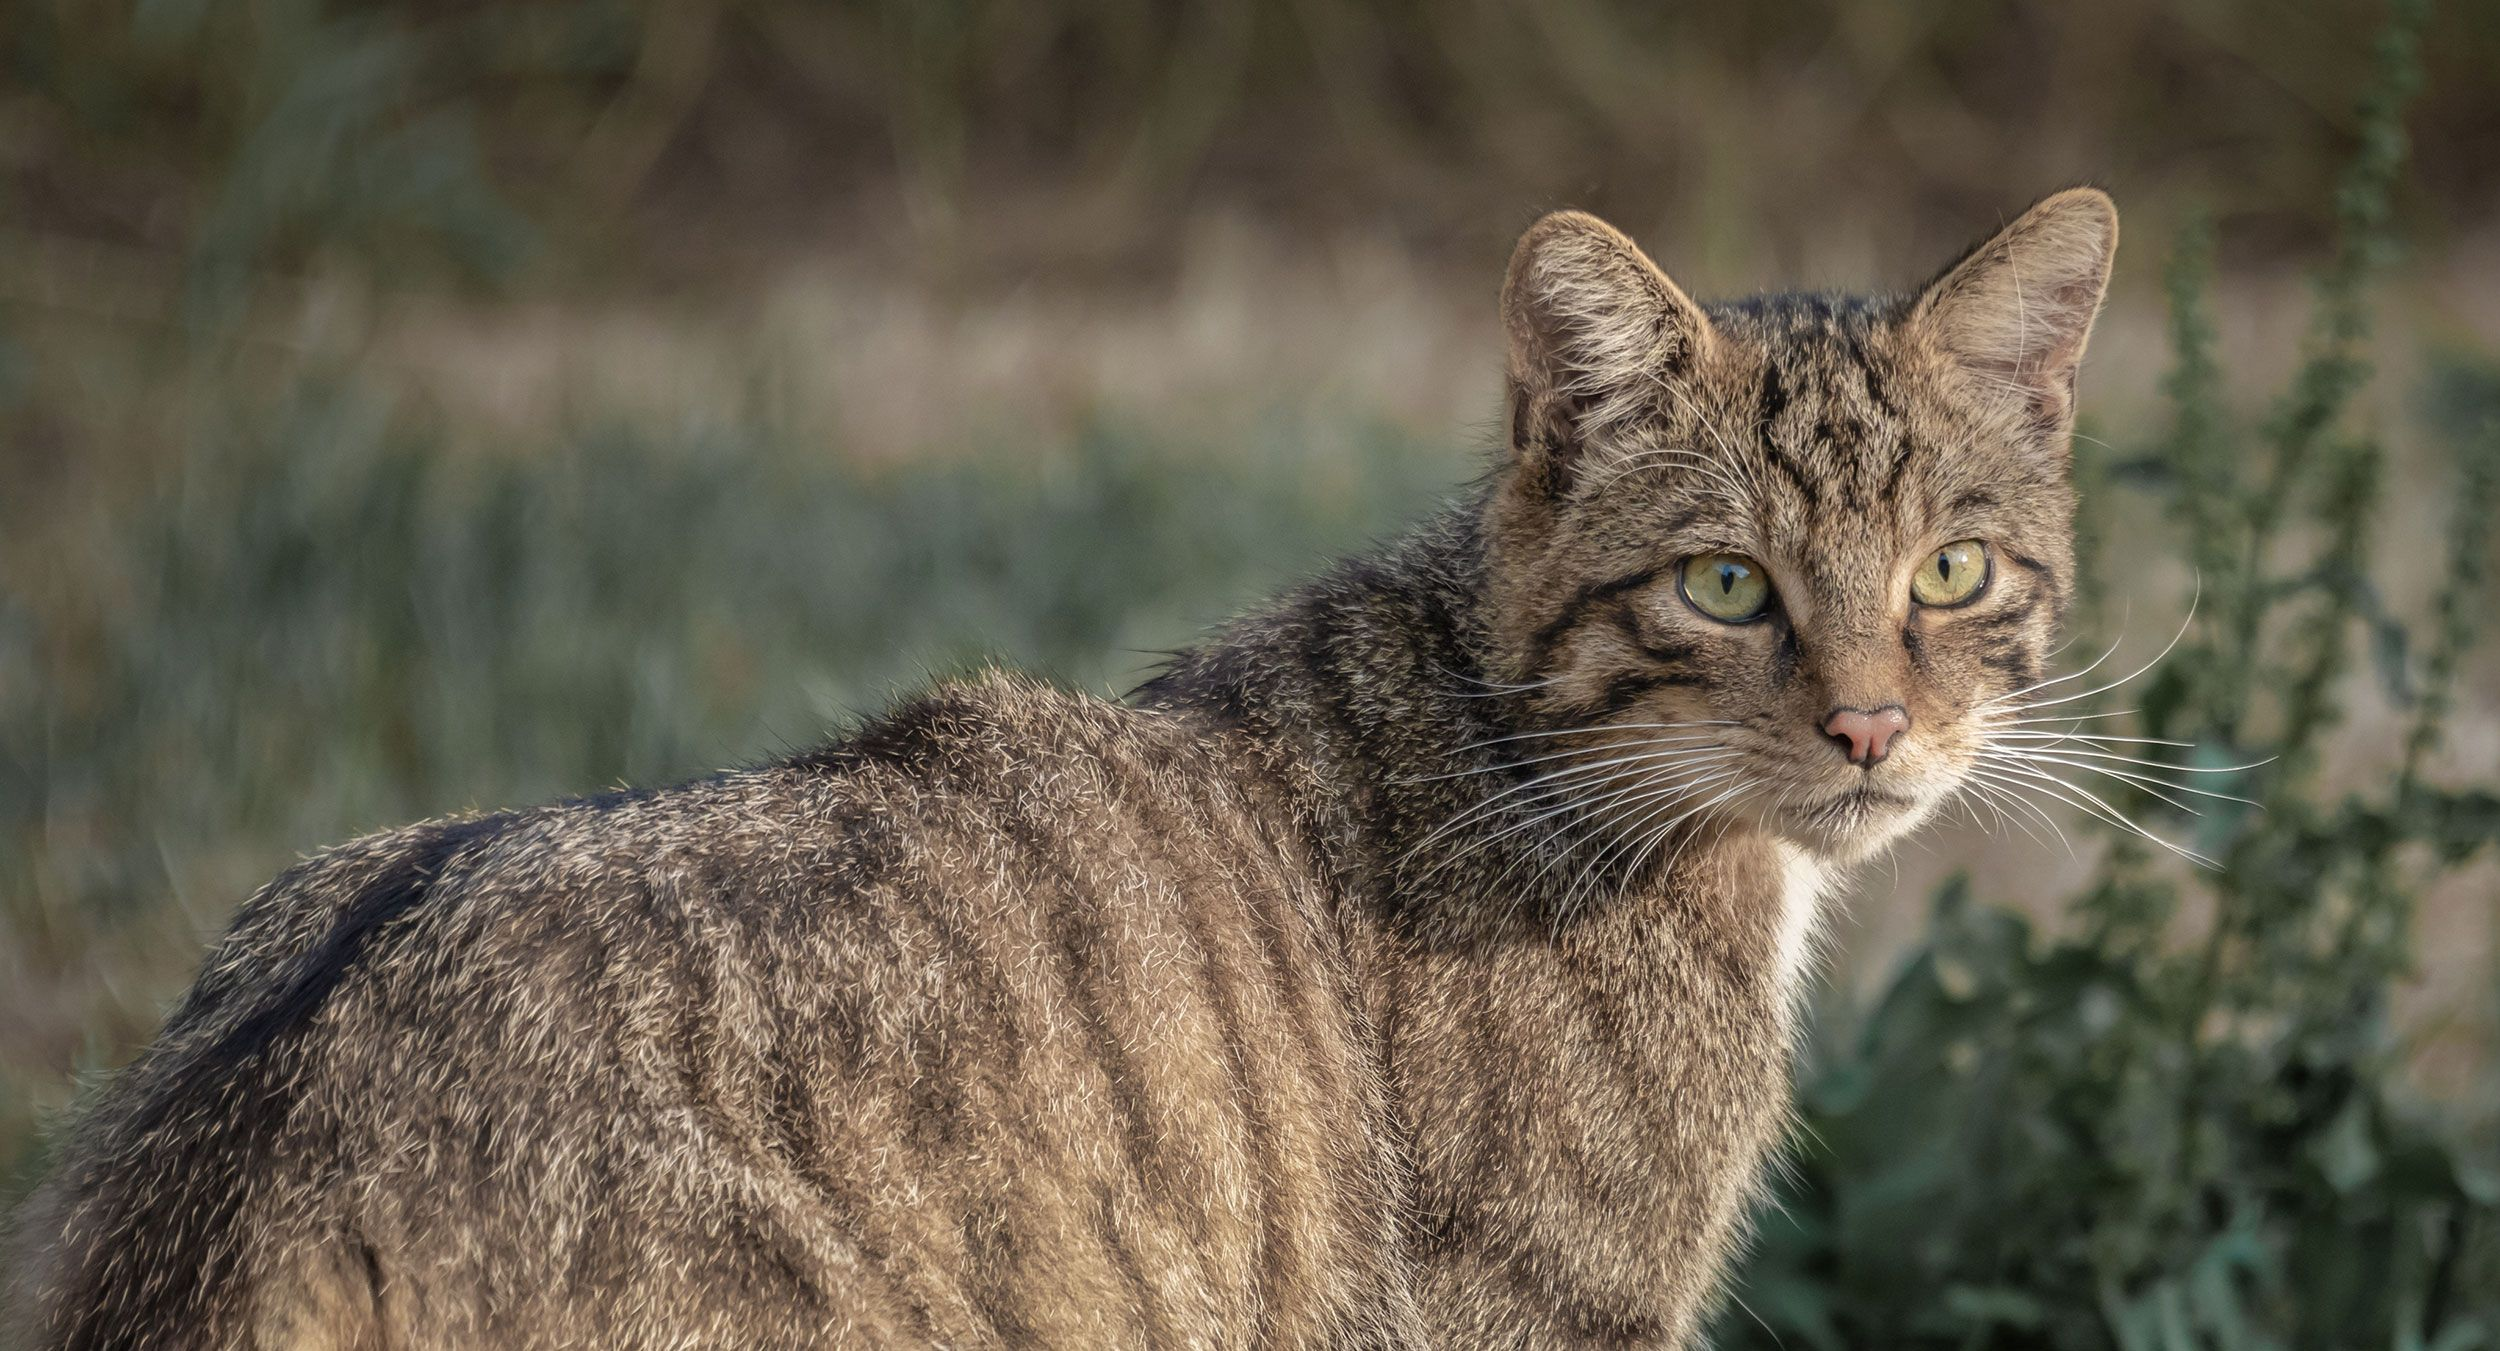 Wildcat-shutterstock-Alan-Tunnicliffe-Which-cats-are-whichUnderstanding-hybridisation-in-Scottish-wildcats